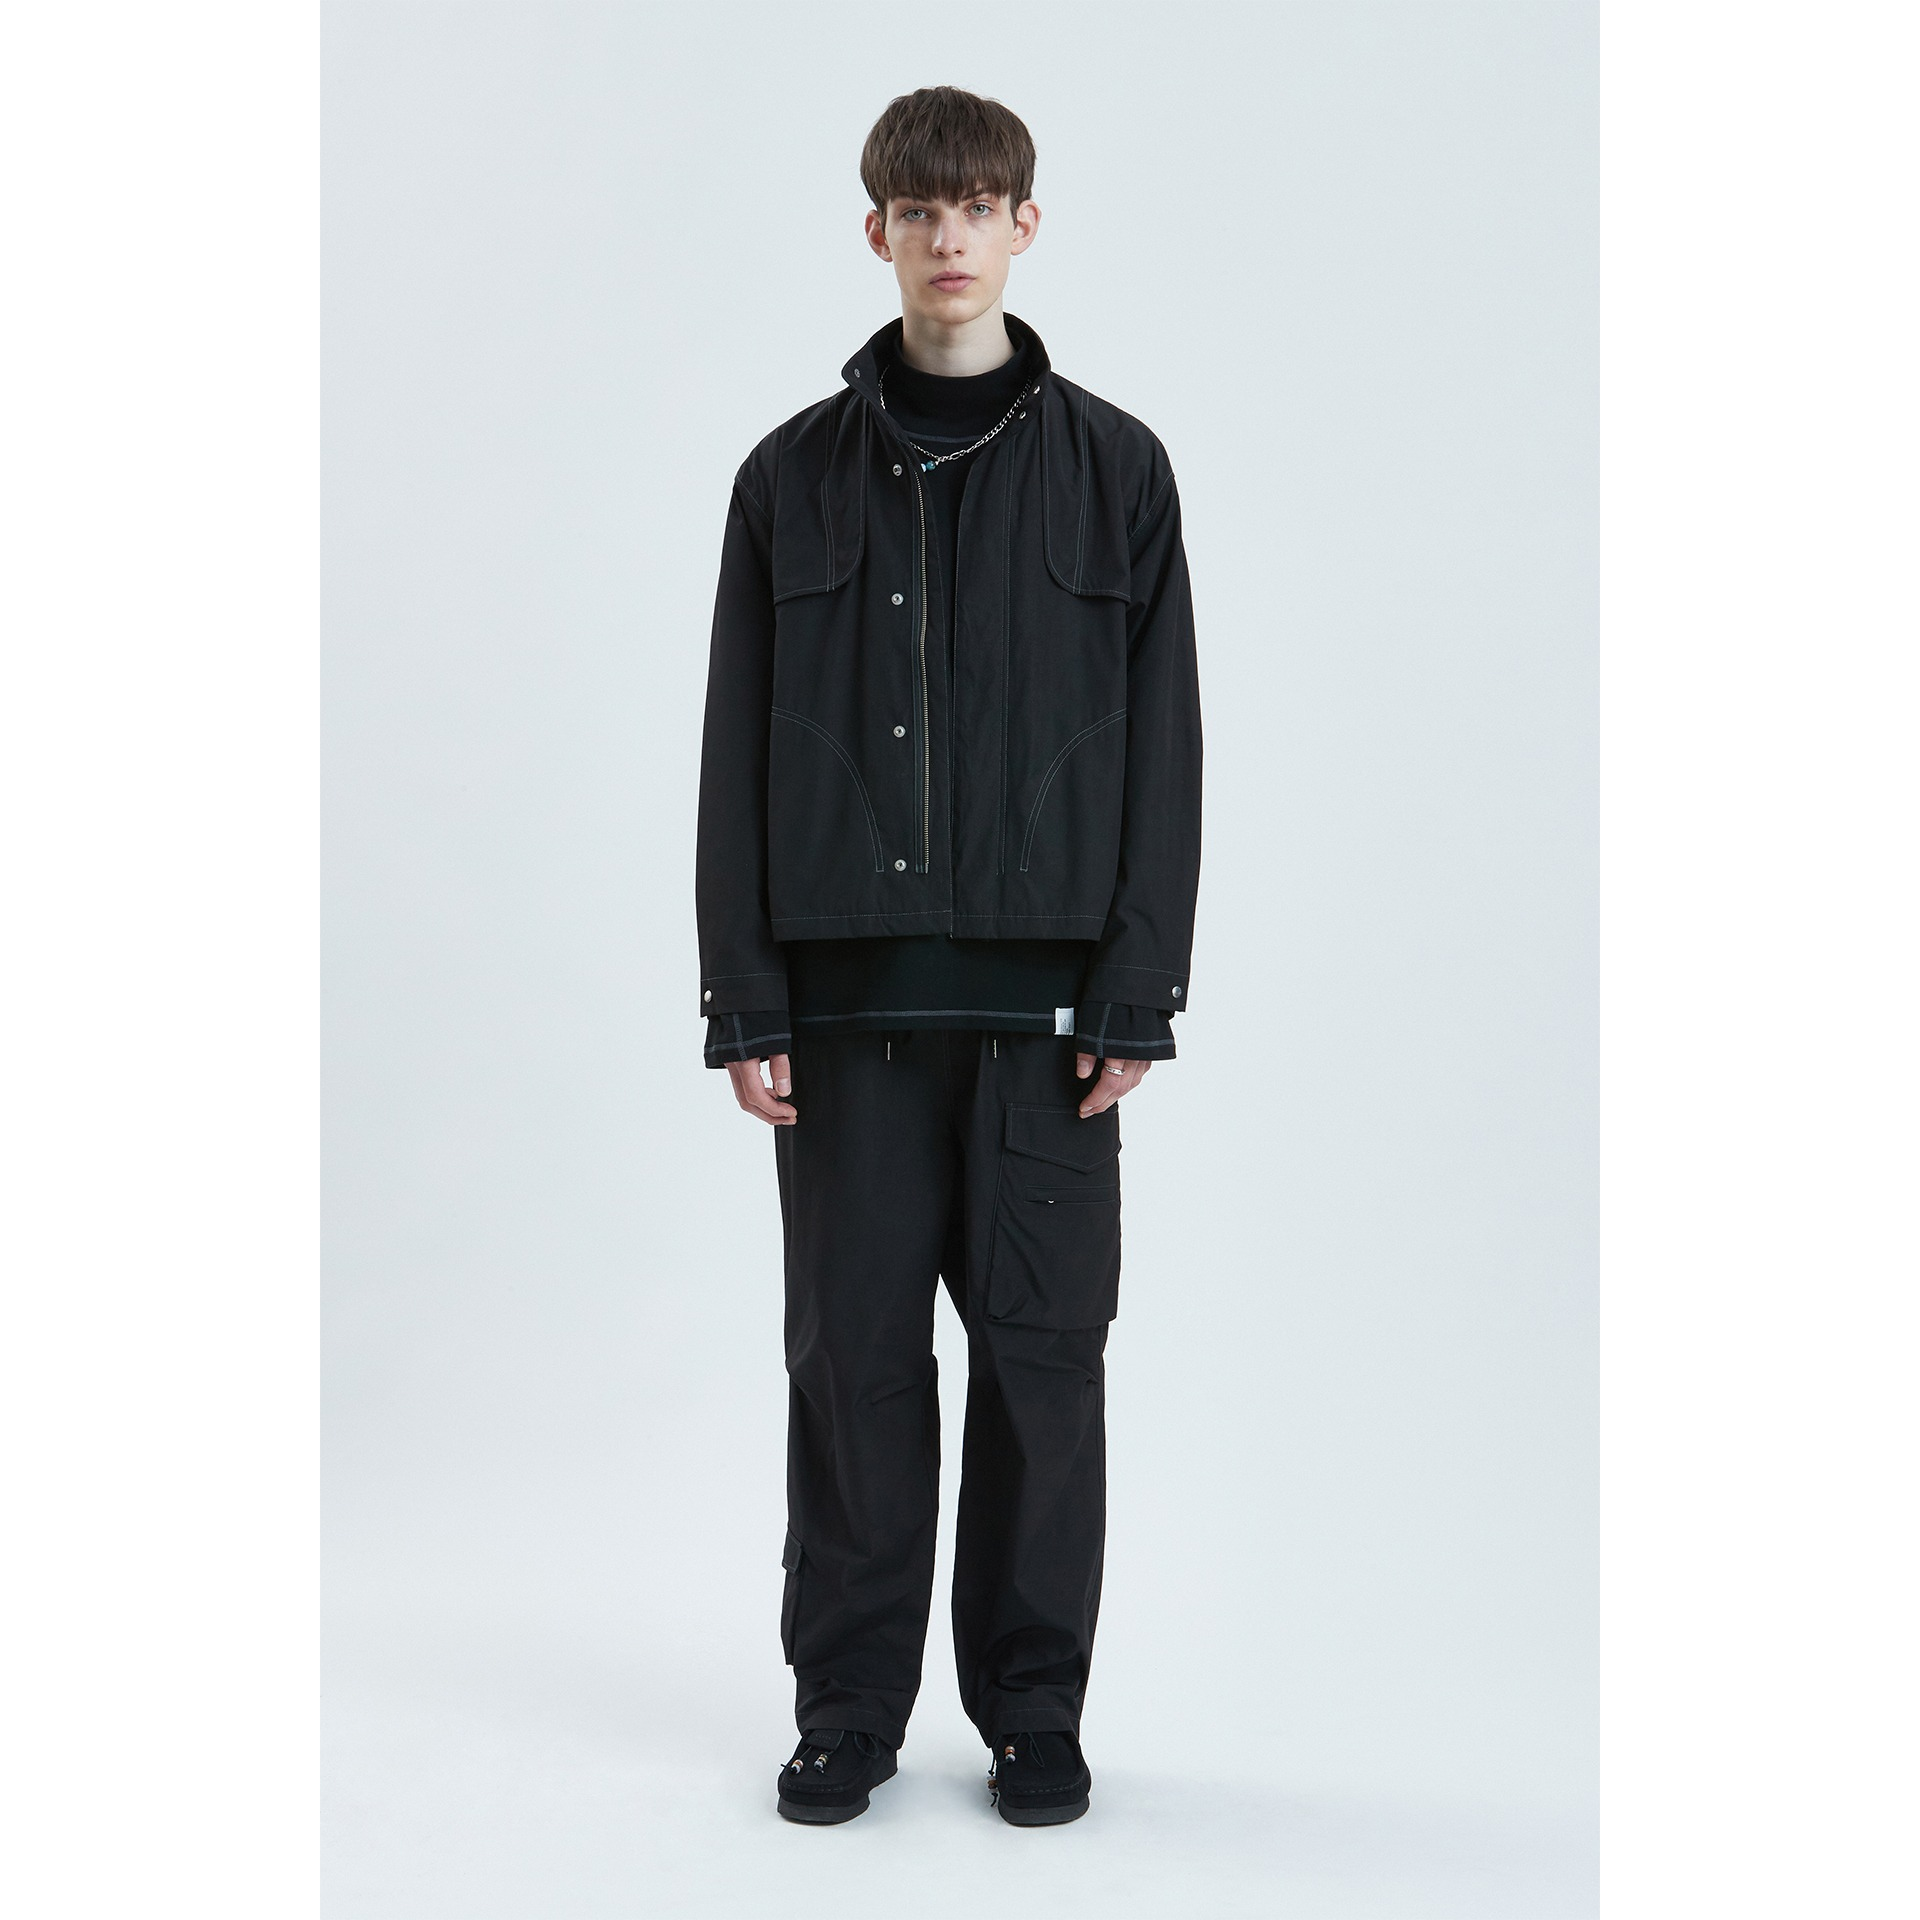 LIFUL CONTRAST STITCH FLAP JACKET black